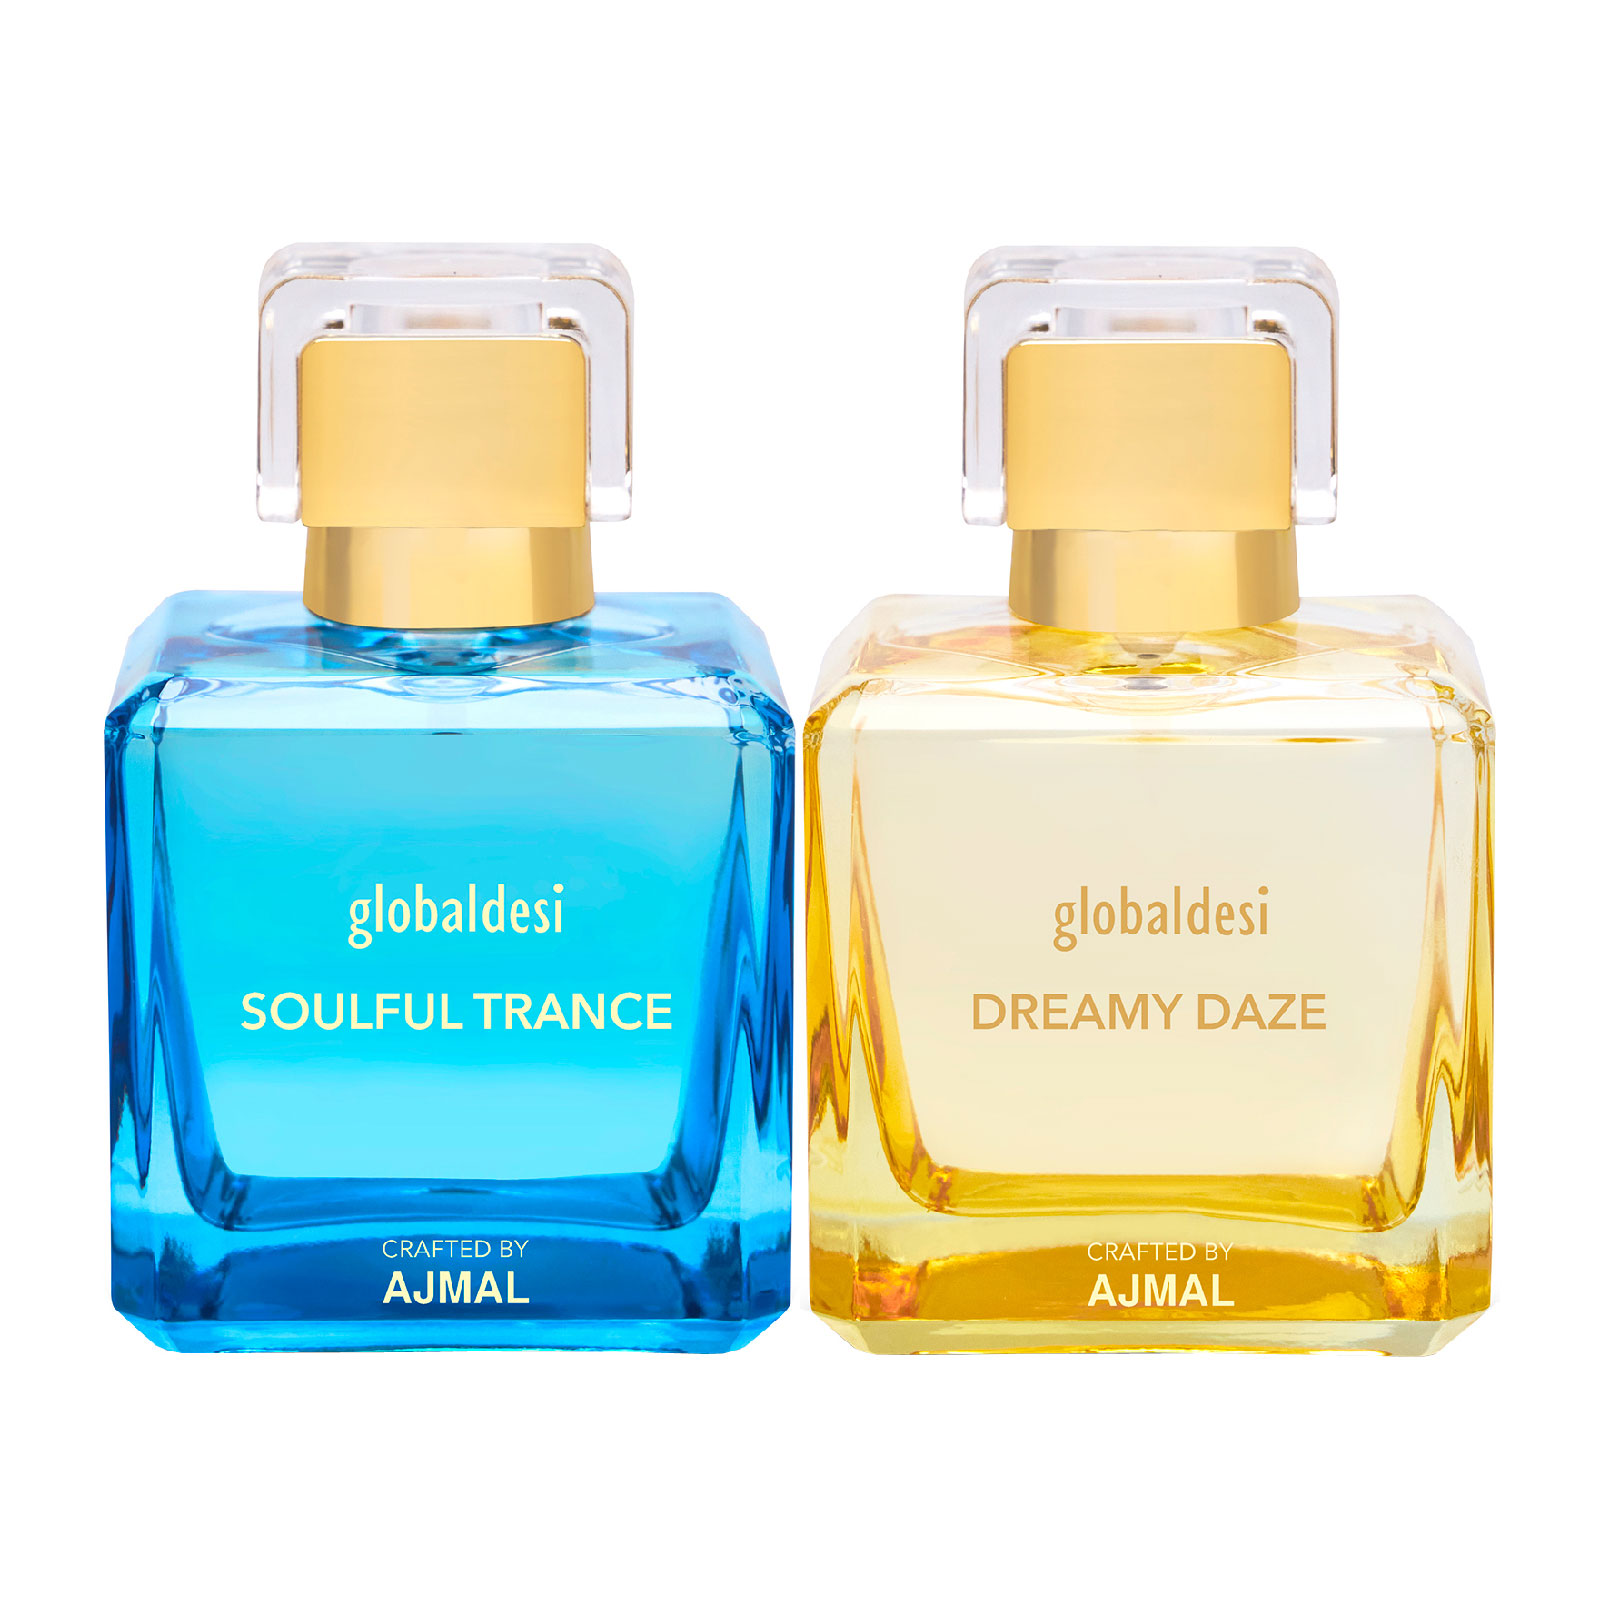 Global Desi Crafted By Ajmal | Global Desi Soulful Trance & Dreamy Daze Pack of 2 Eau De Parfum 100ML for Women Crafted by Ajmal + 2 Parfum Testers